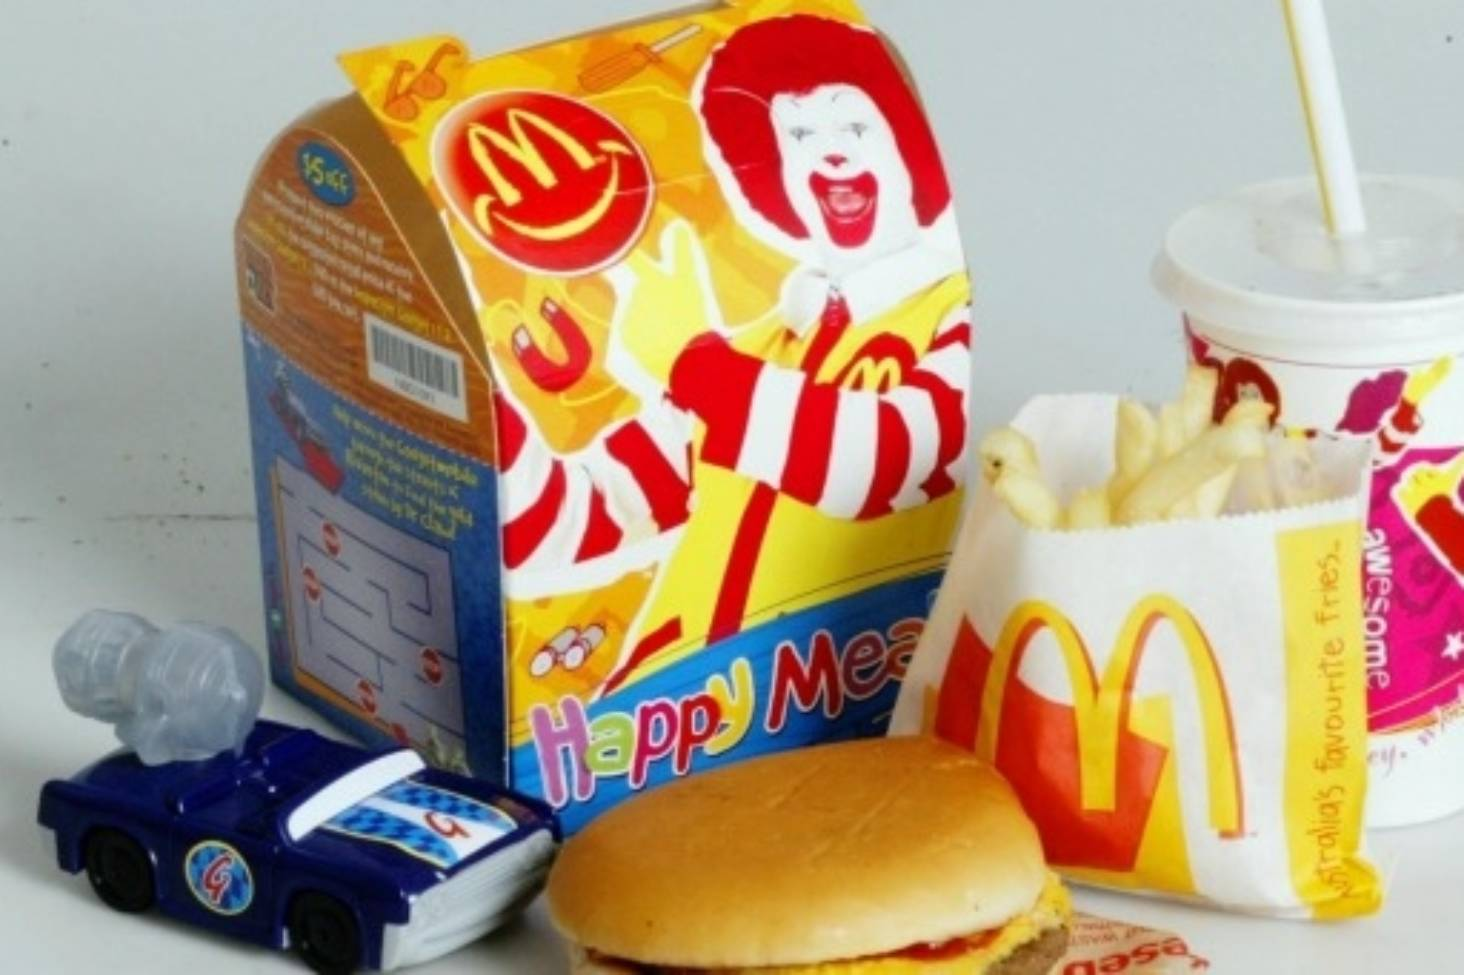 McDonalds cuts Happy Meal from 1 2 3 menu pictures